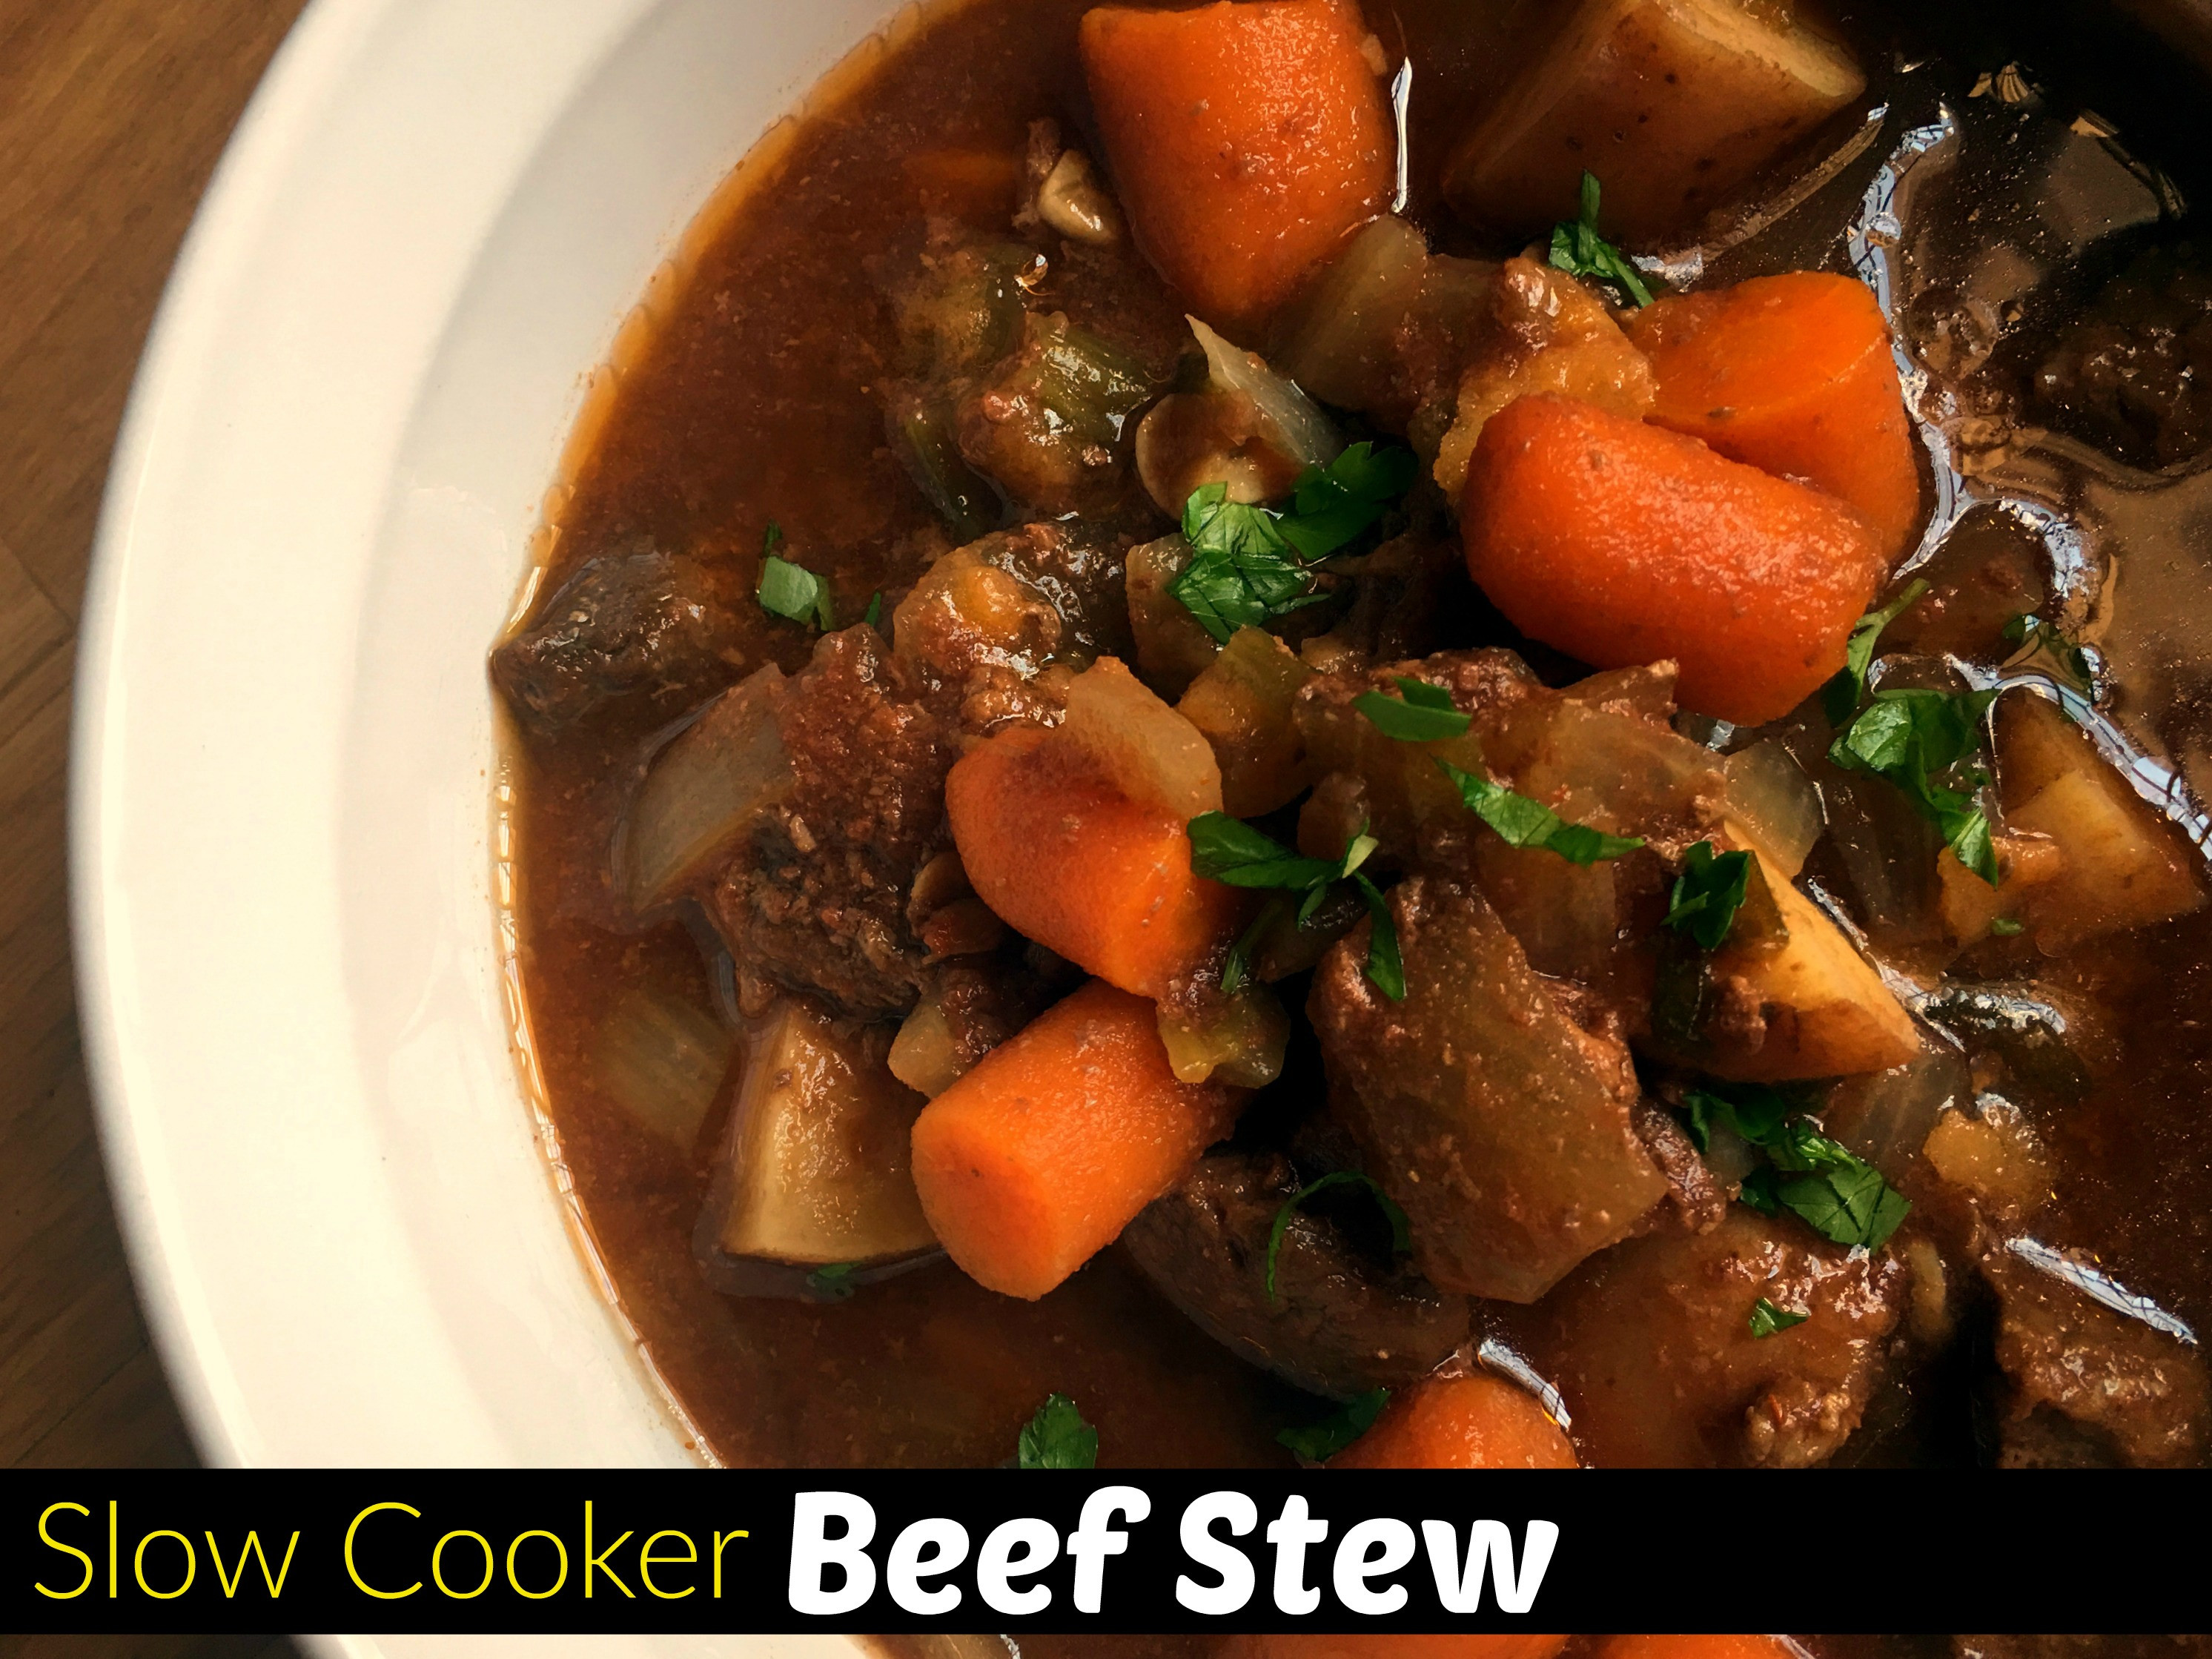 Slow Cooker Beef Stew Recipes  Slow Cooker Beef Stew Aunt Bee s Recipes